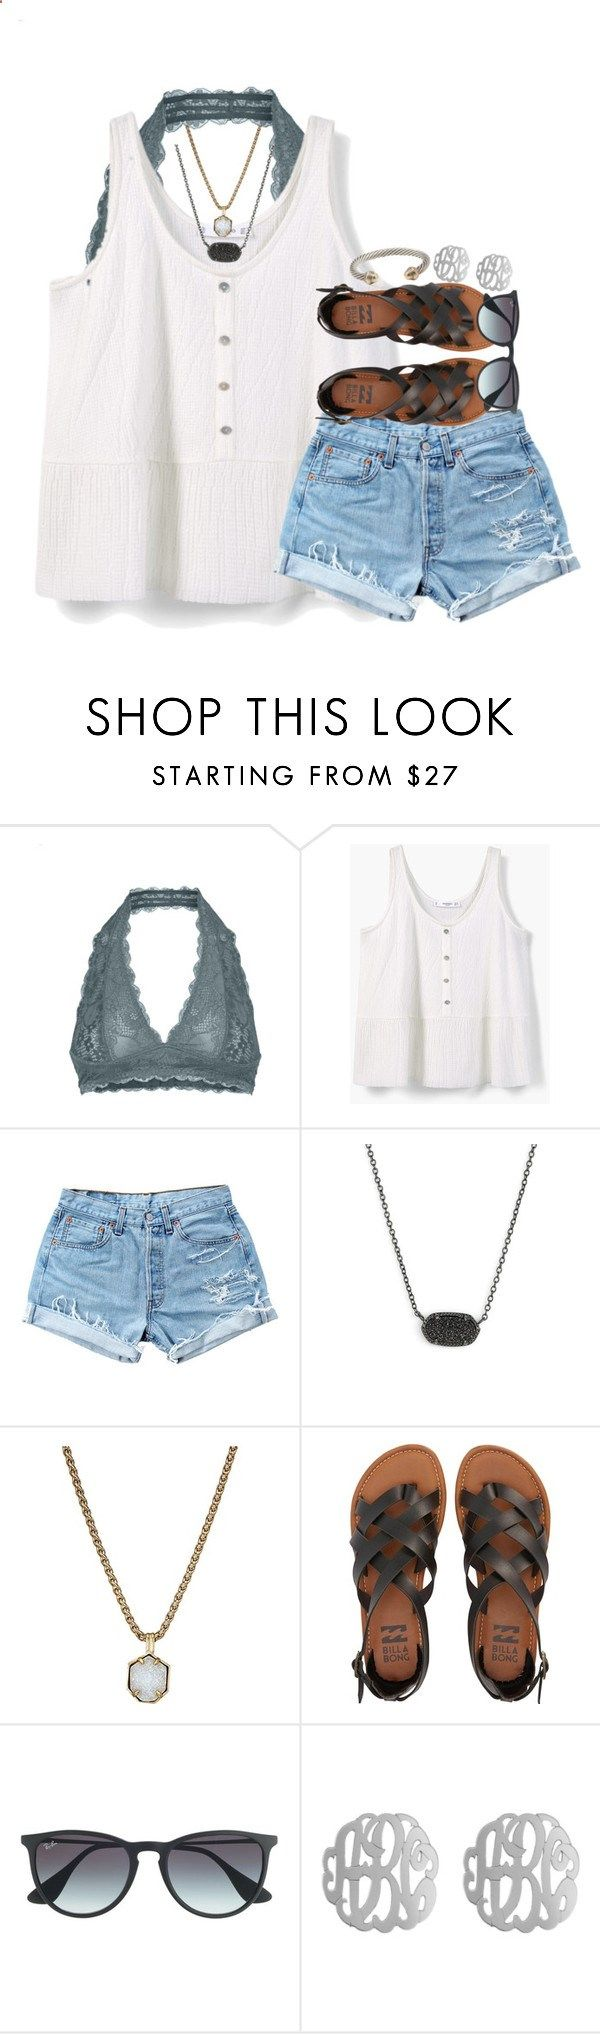 whats ur biggest plan 4 the summer? by syd-em ❤ liked on Polyvore featuring Free People, MANGO, Levis, Kendra Scott, Billabong, Ray-Ban, Initial Reaction and David Yurman